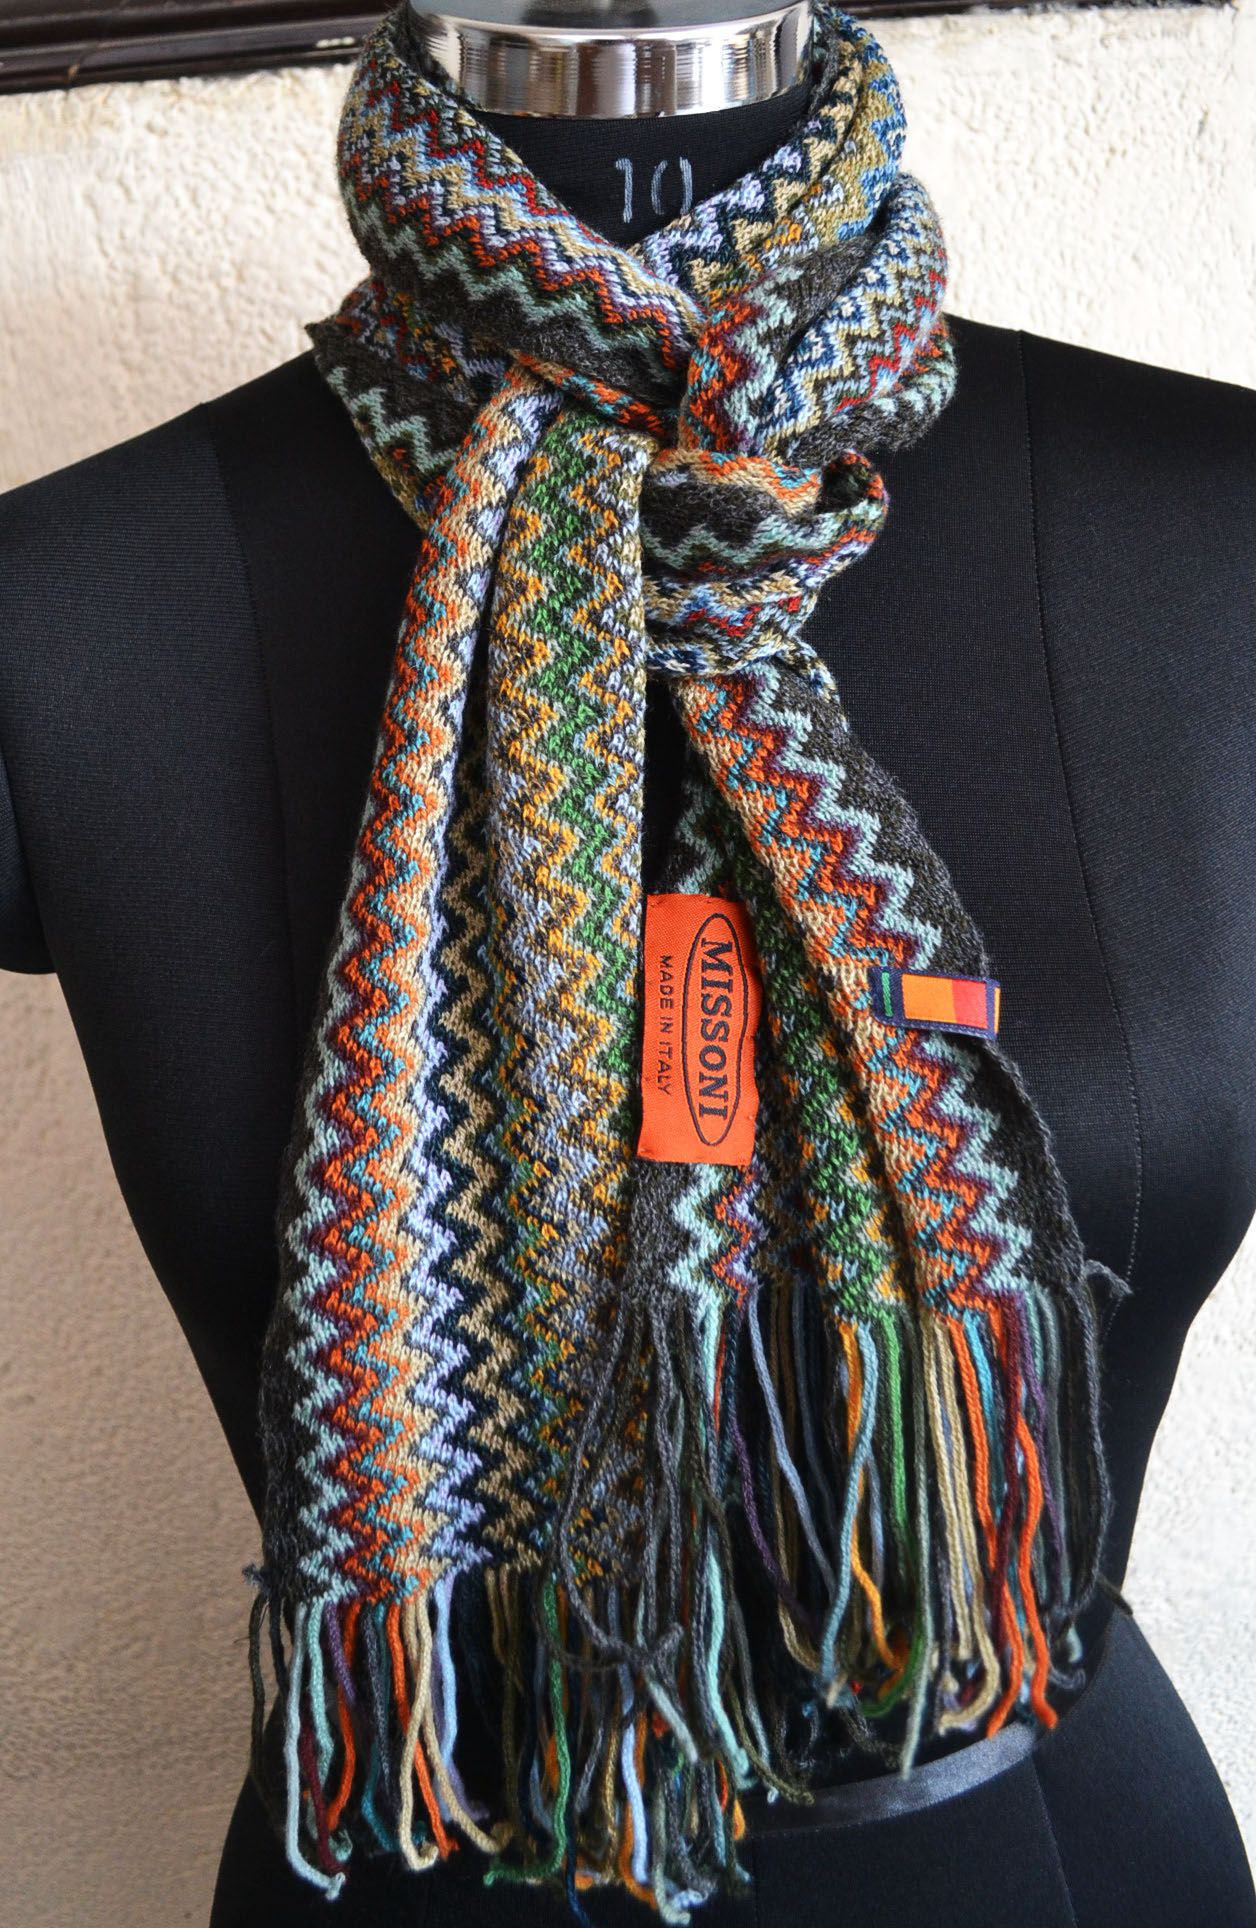 ac430cad5f133 Sale of Branded Pashminas - Missoni, BURBERRY, COACH Scarves - Cashmere &  Pure Silk - On sale off - Scarves, Mufflers.